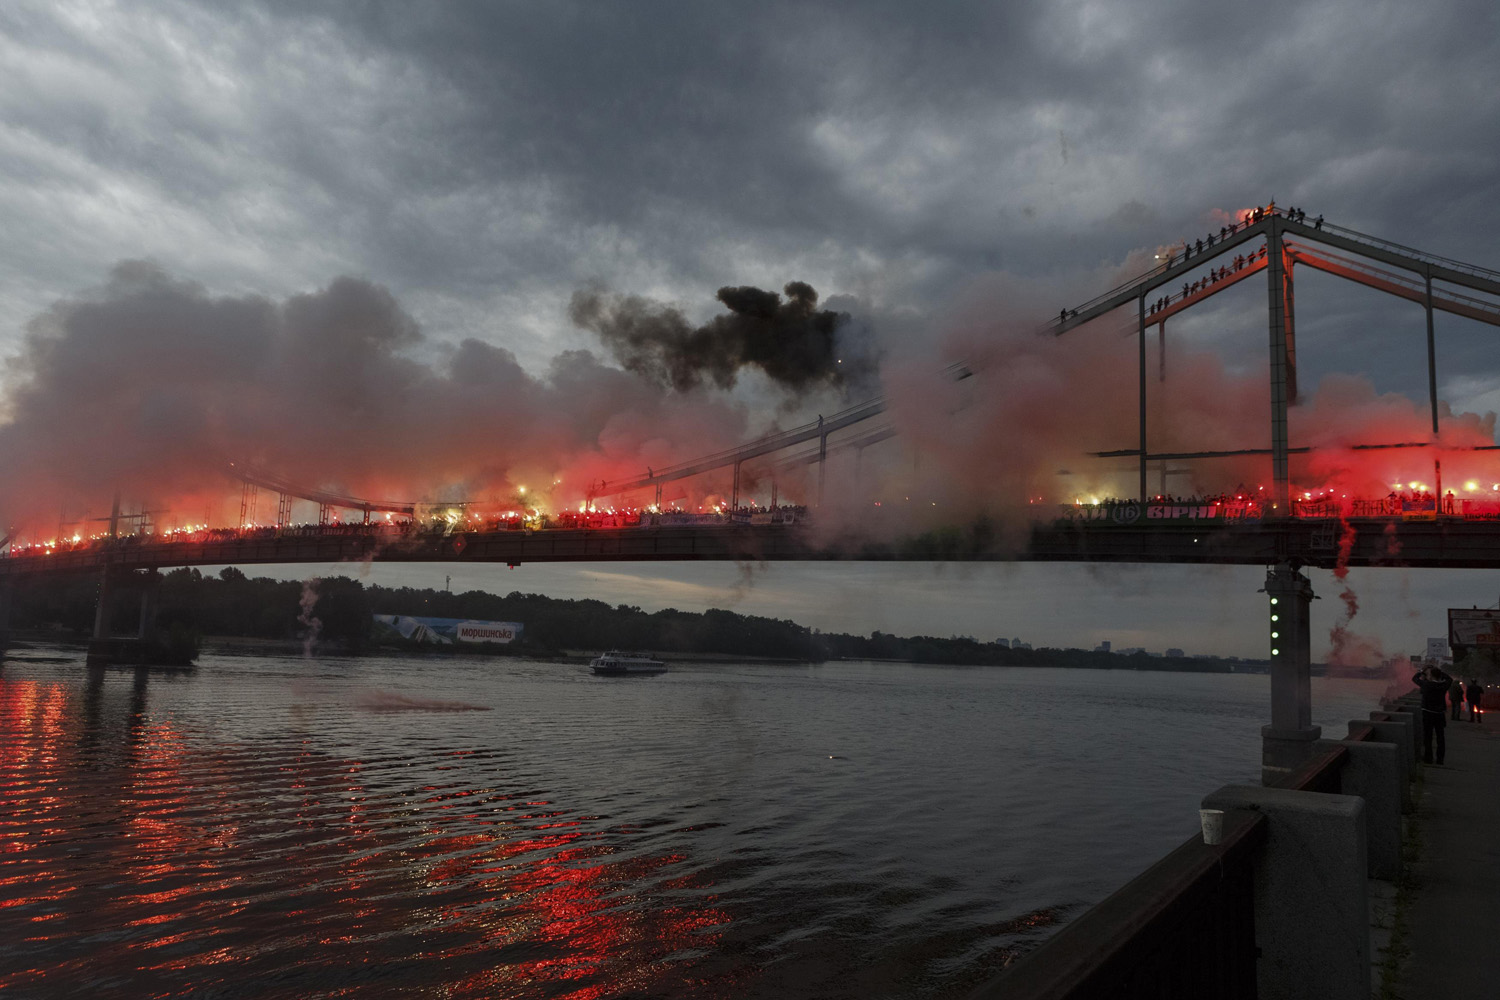 Ukrainian soccer fans light flares on a bridge across the Dnieper River in Kiev, Ukraine on May 18, 2014.